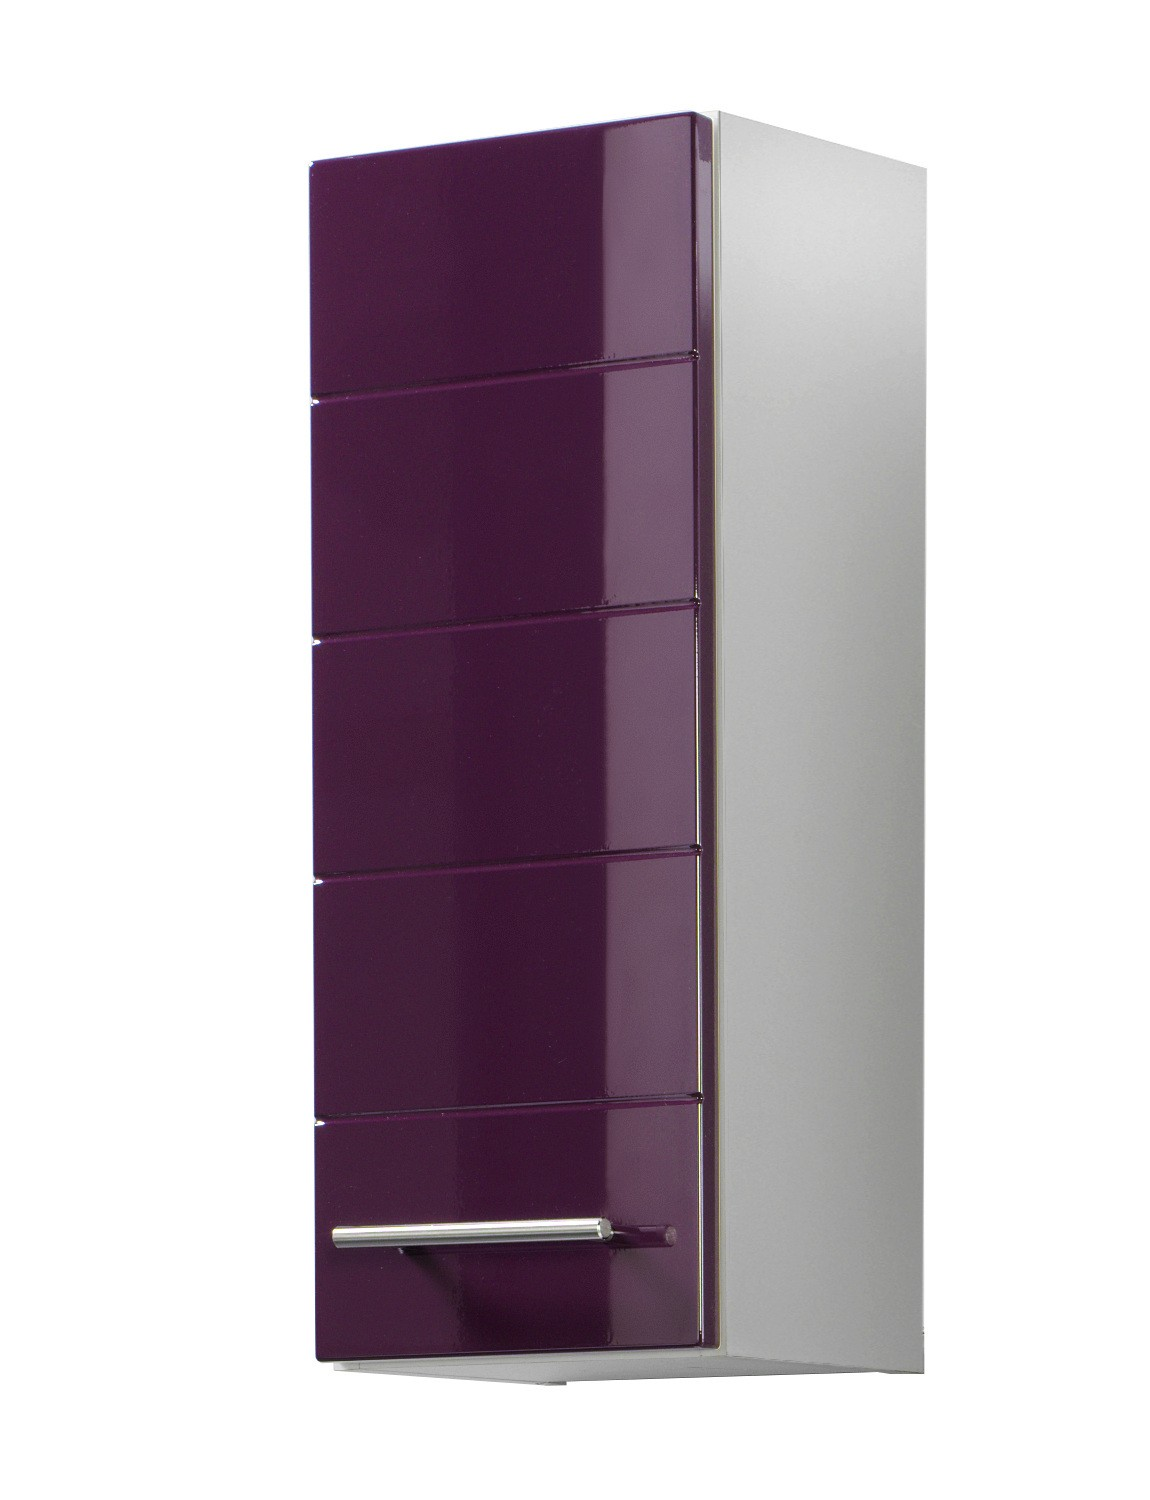 bad h ngeschrank rimini 1 t rig 25 cm breit hochglanz aubergine bad rimini. Black Bedroom Furniture Sets. Home Design Ideas